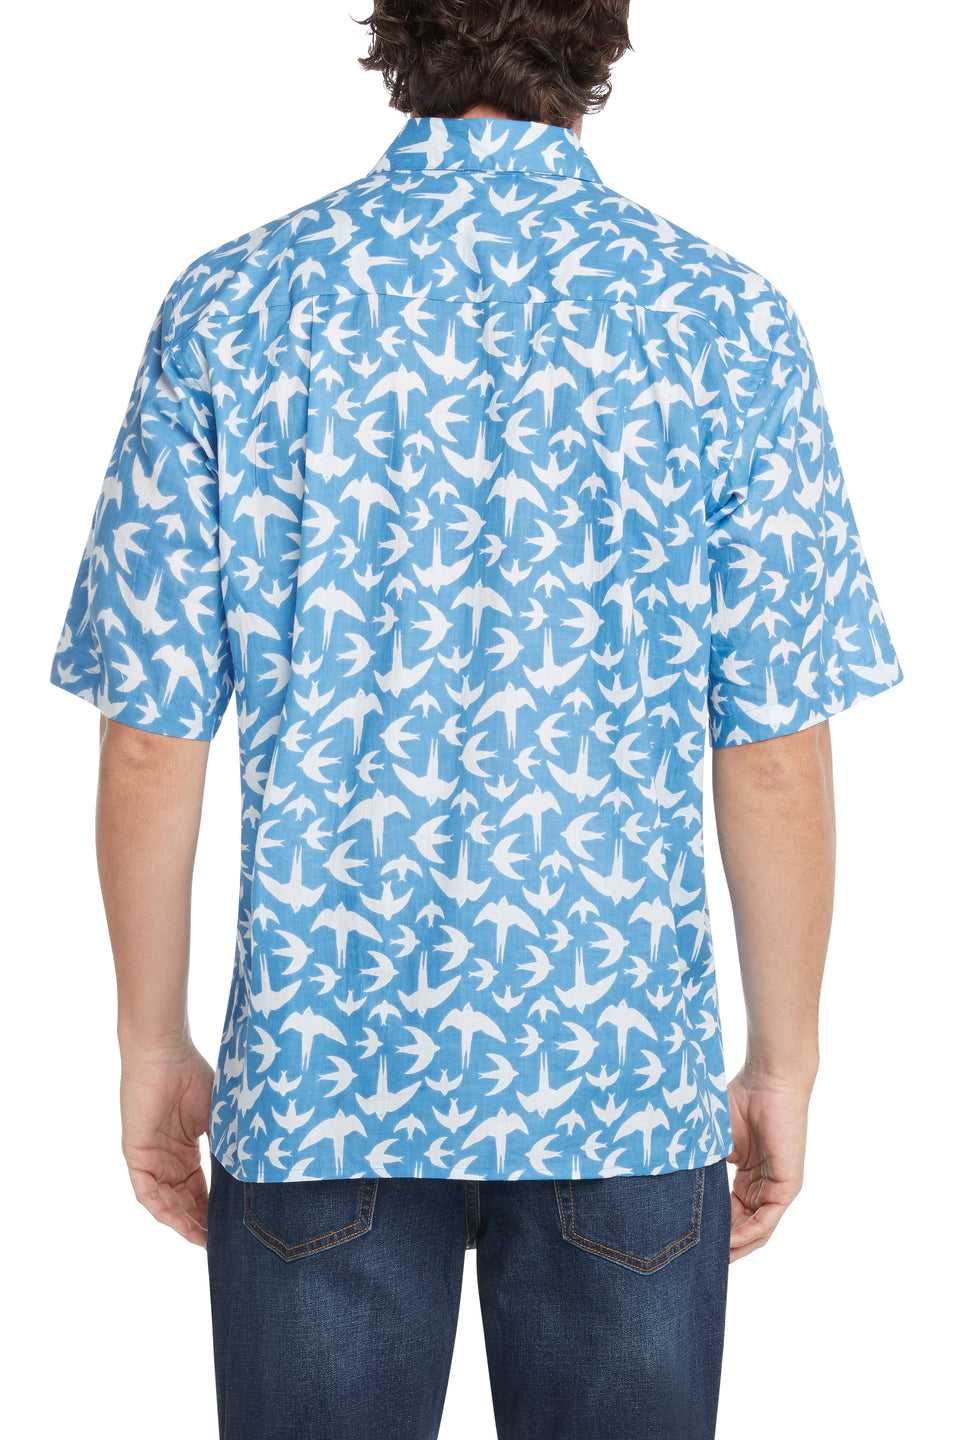 French Blue Swallows Sympatiko Shirt